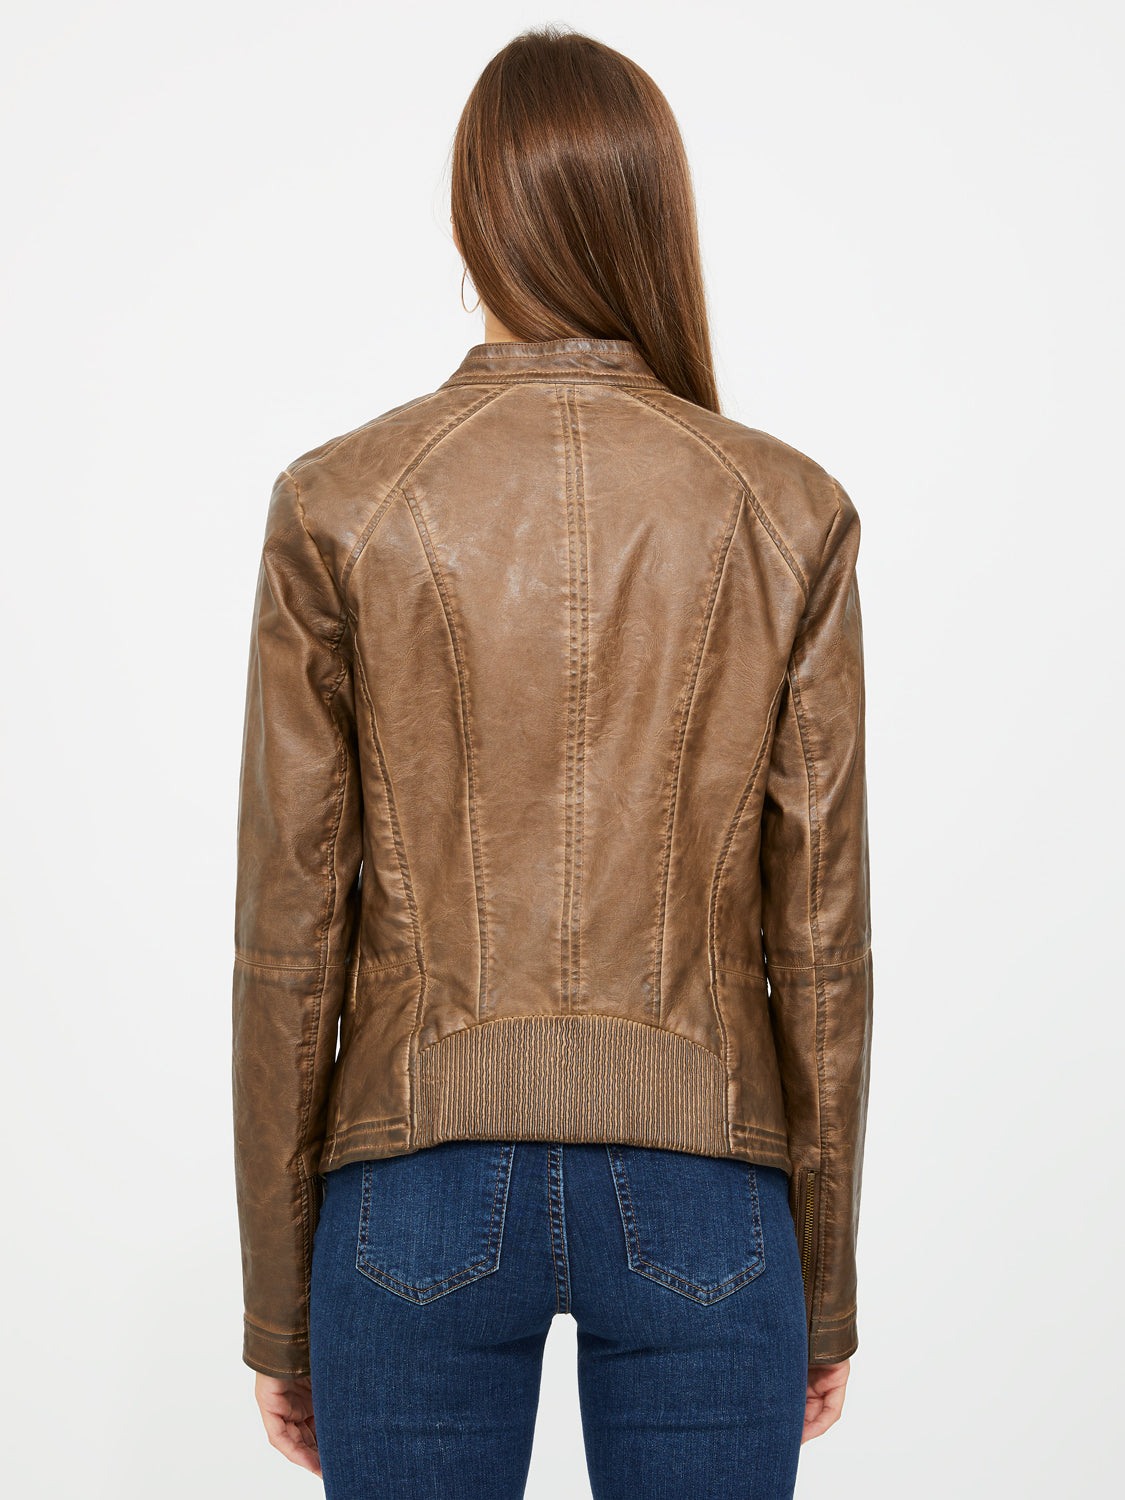 Faux Leather Jacket With Smocked Details